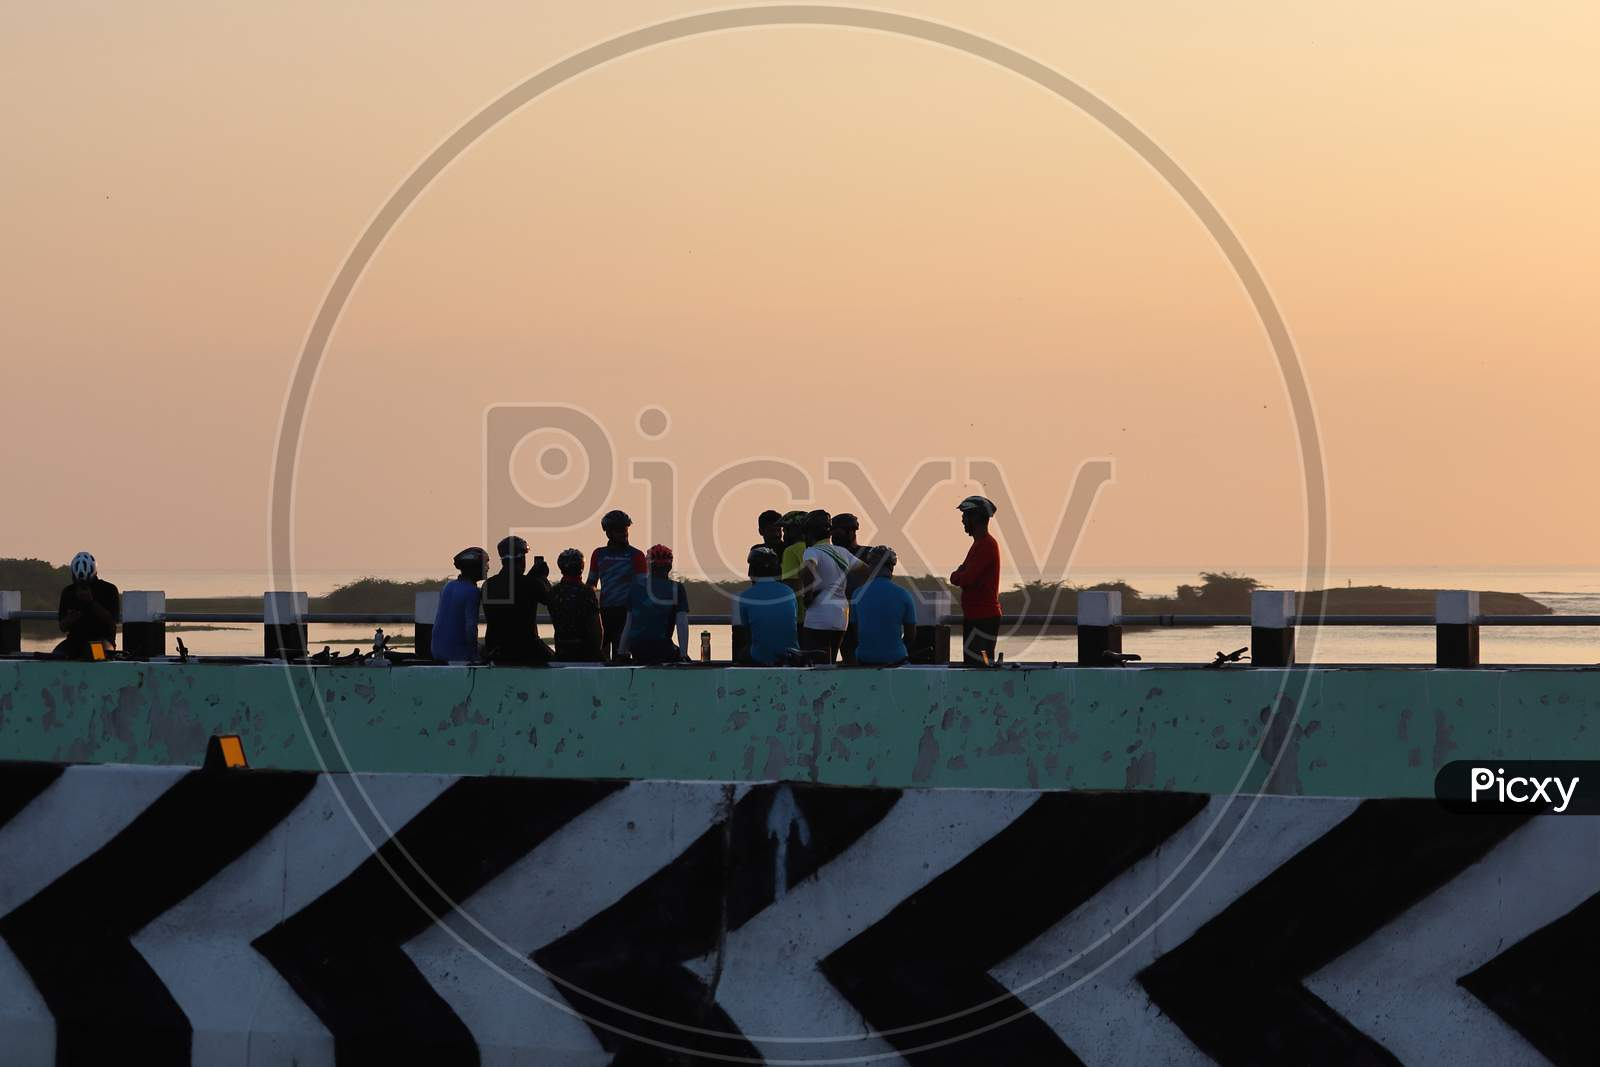 A Group Silhouette Sport Men Gather Atop A Bridge Near The Seaside In The Morning While Doing Selfie Photography